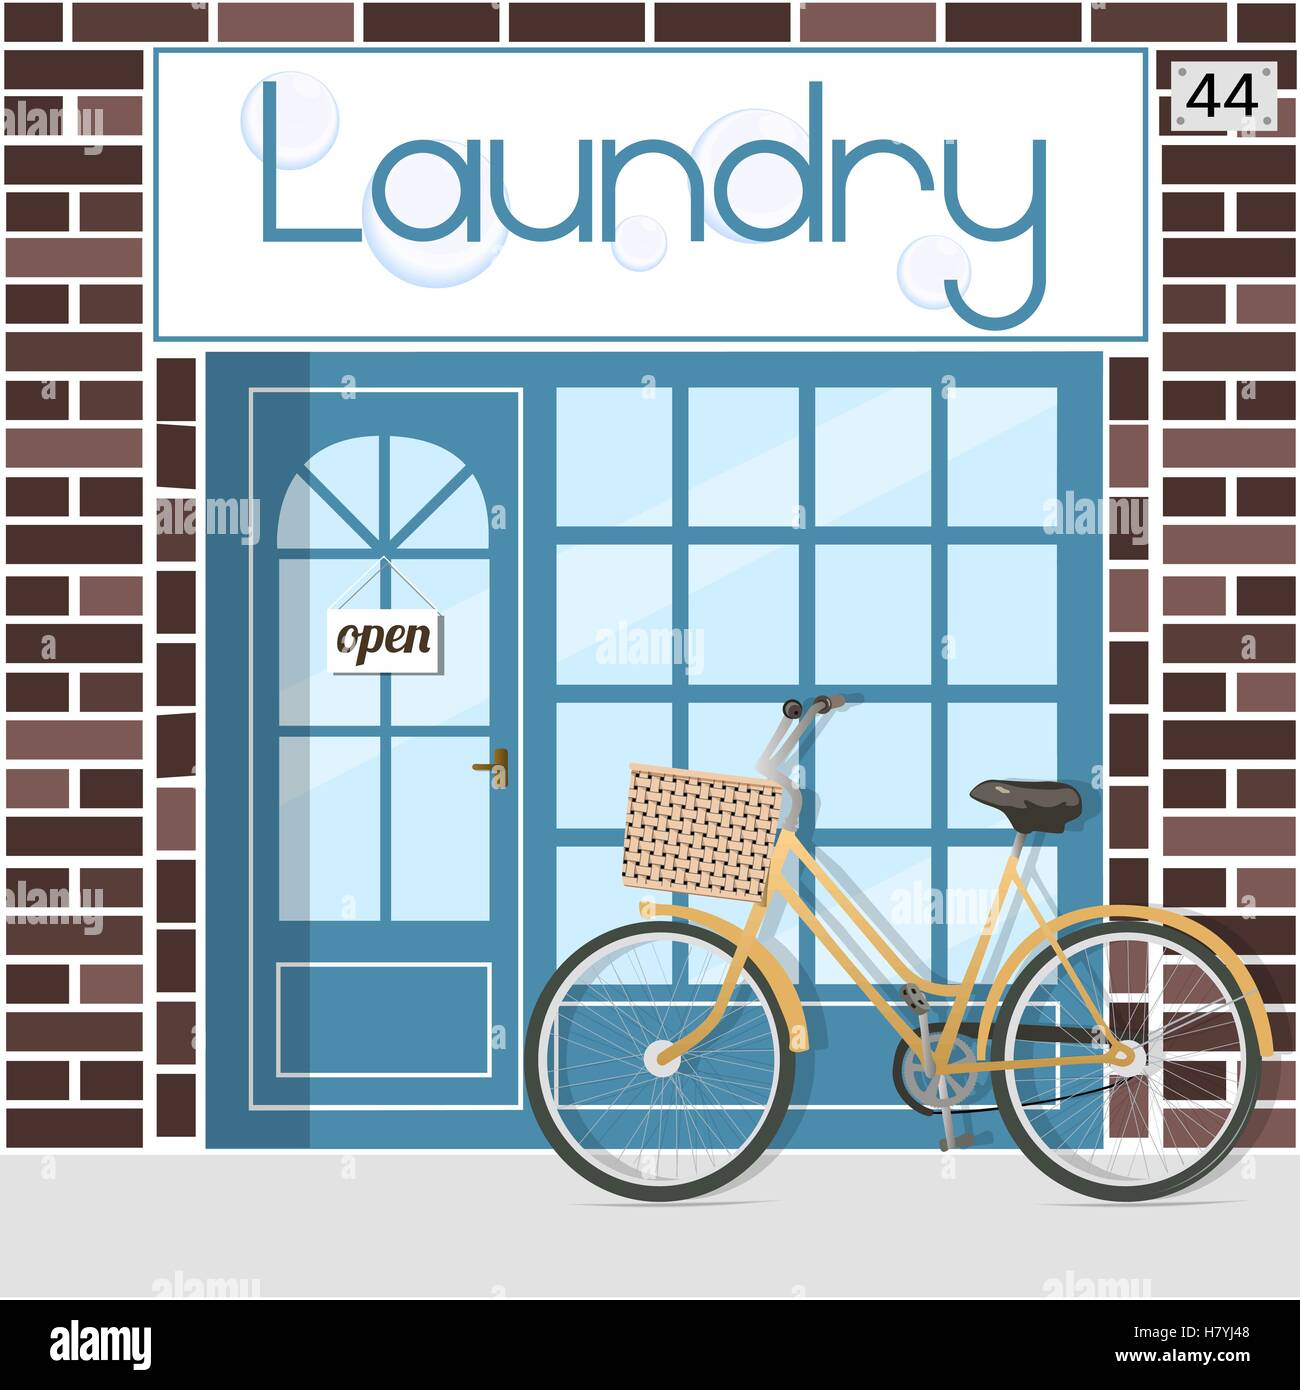 laundry detergent shop stock photos u0026 laundry detergent shop stock